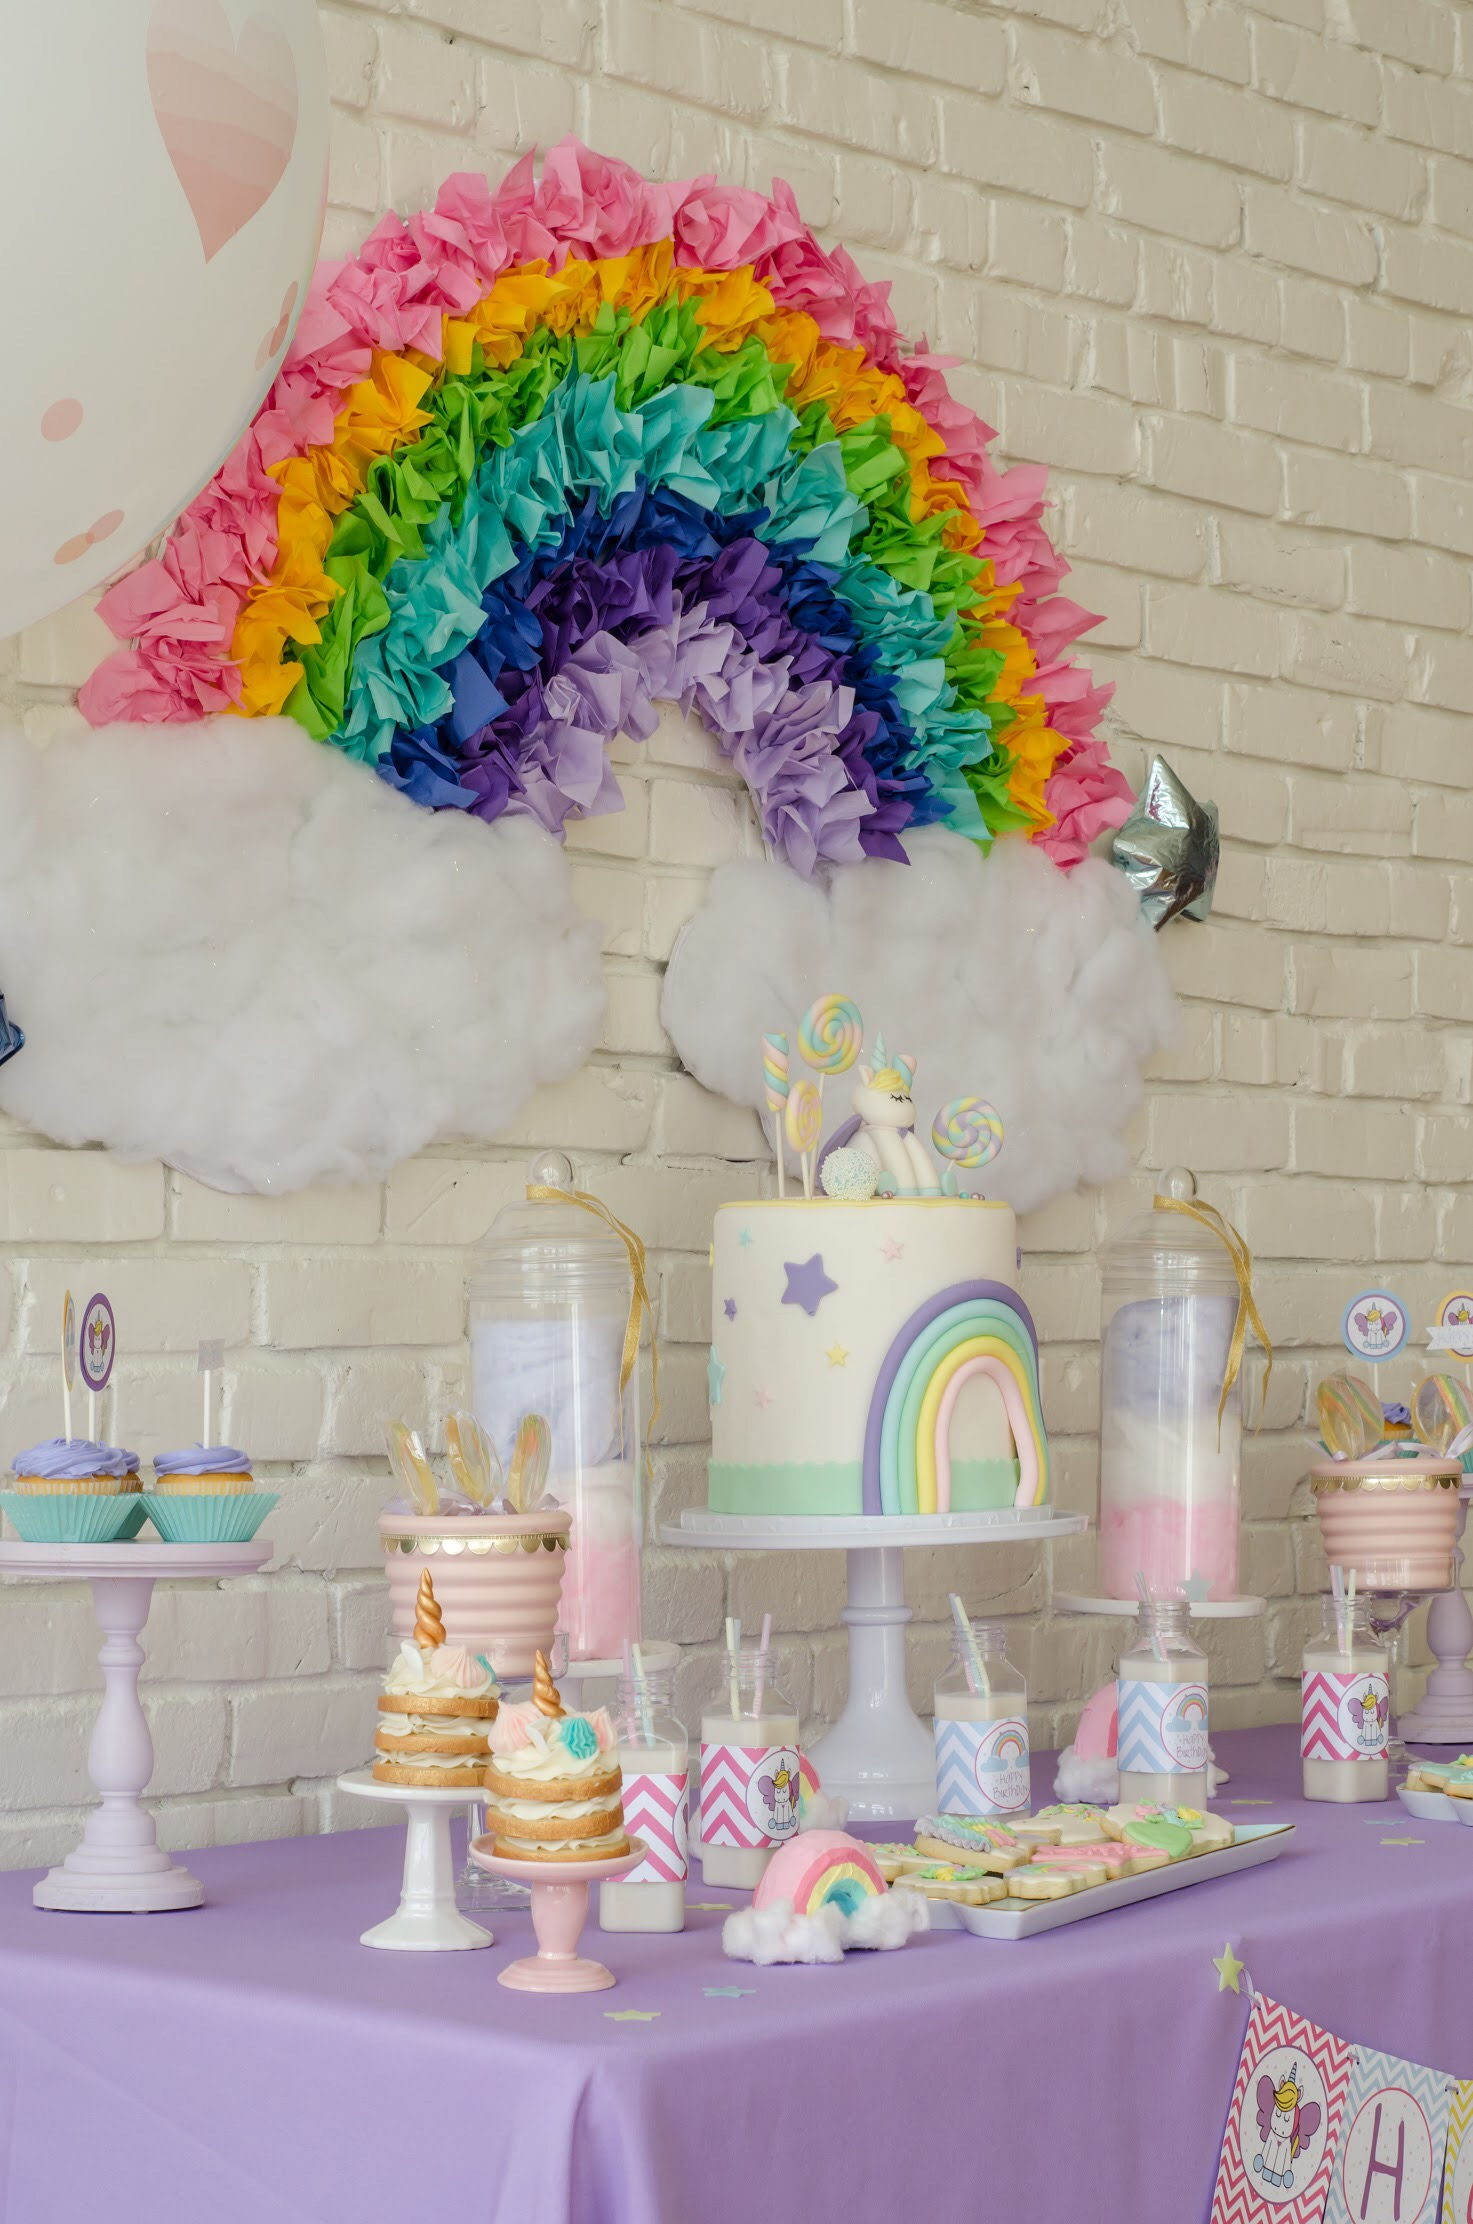 The prettiest pastel rainbow unicorn birthday party dessert table. See more at Mint Event Design www.minteventdesign.com #unicornparty #desserttable #birthdayparty #birthdaypartyideas #pastelrainbow